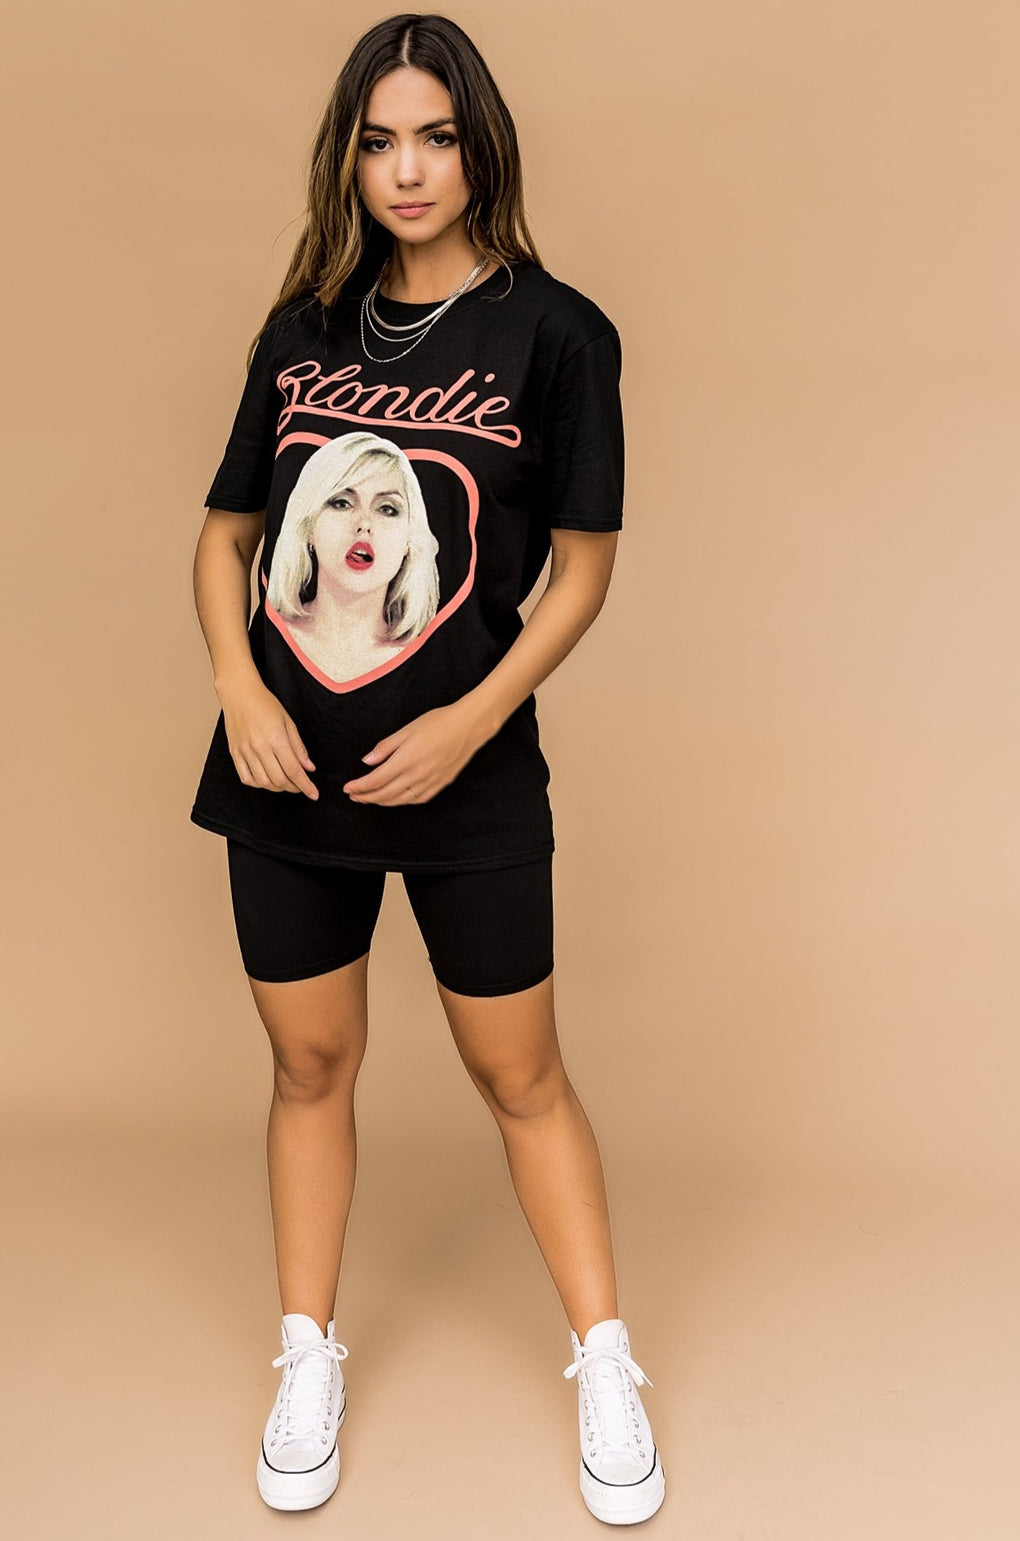 Blondie Forever Graphic Tee